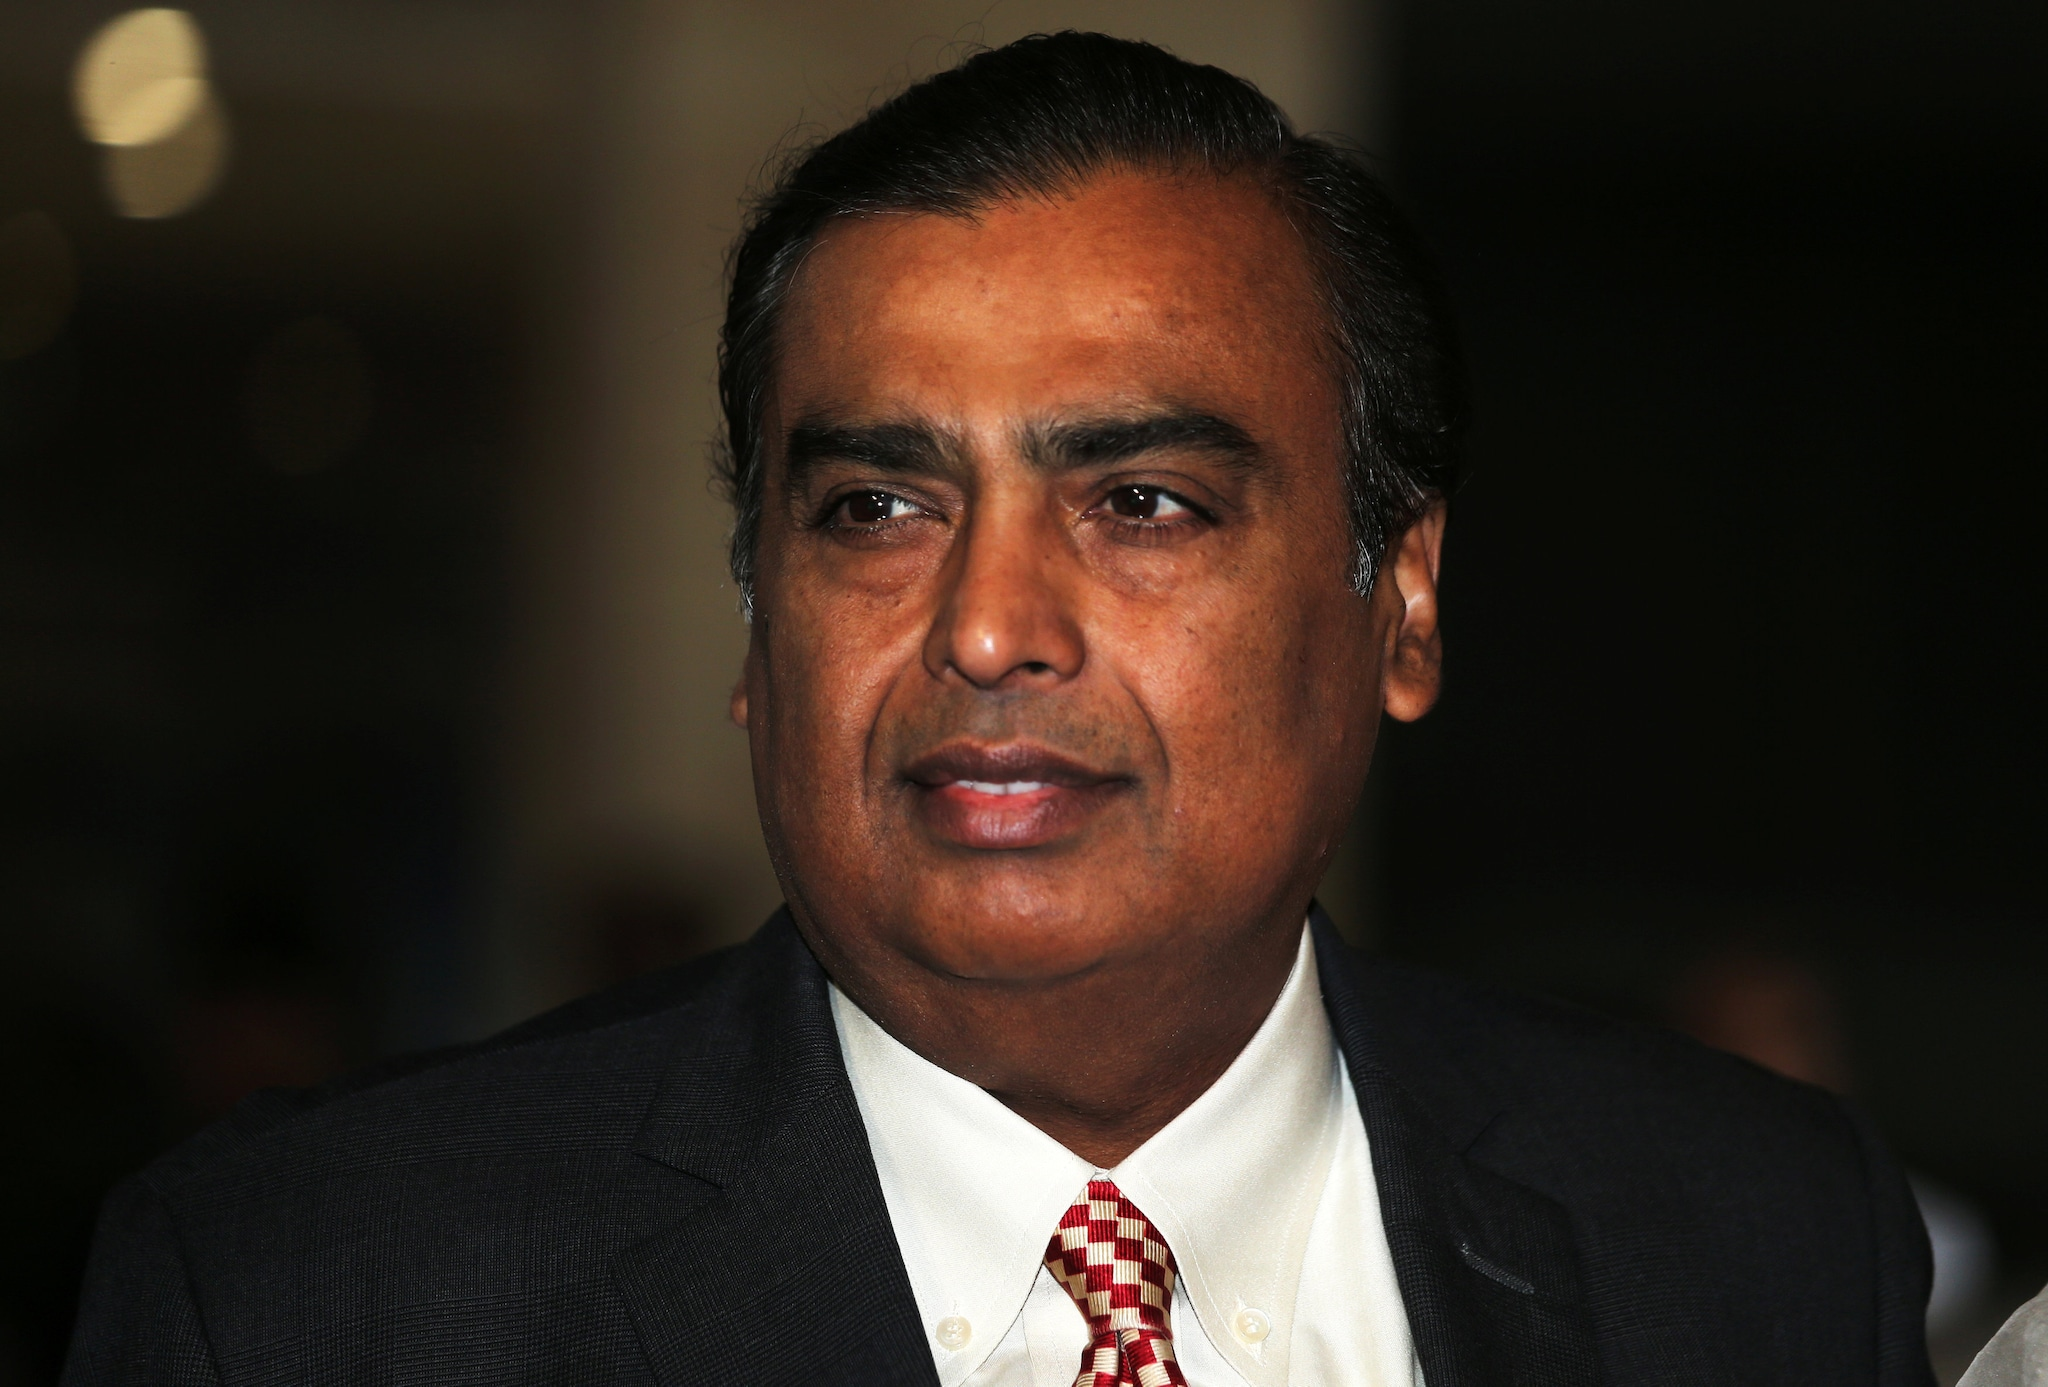 Reliance Industries: RIL-arm Reliance Industrial Investments has entered into agreements to acquire logistics services platform Grab and software firm C-Square Info Solutions. (Image: Reuters)